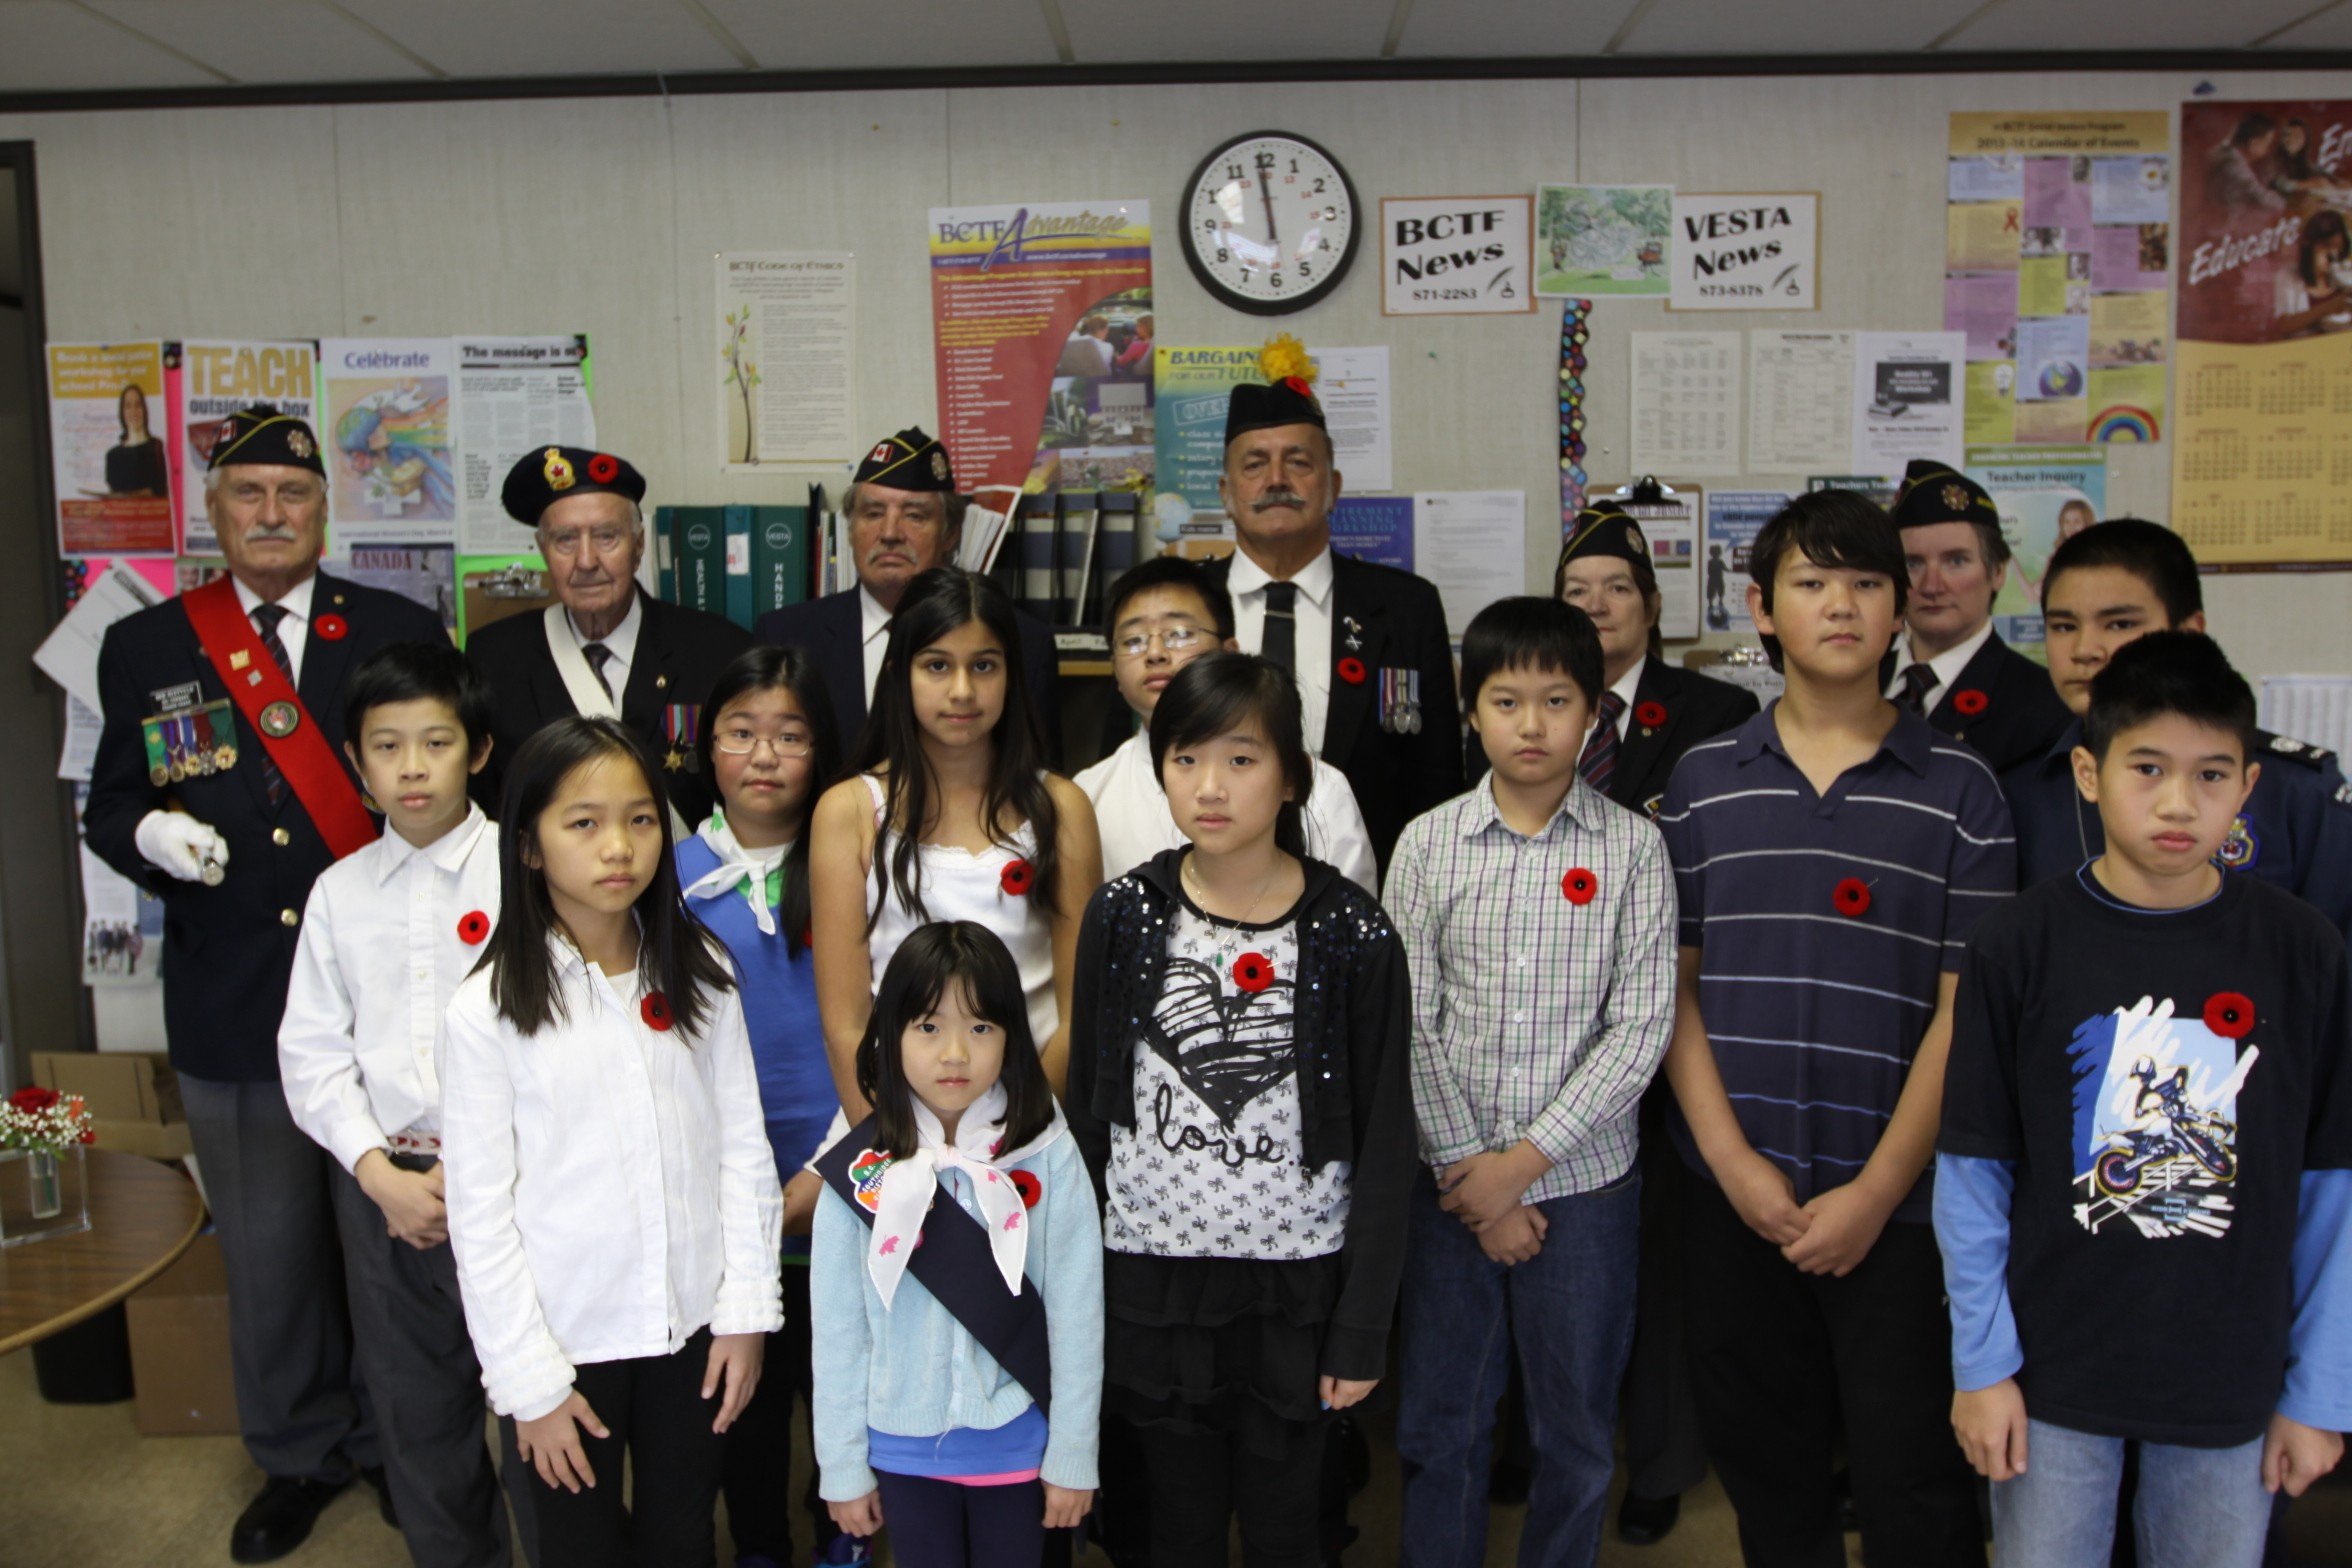 kingsford smith observes remembrance day with veterans and